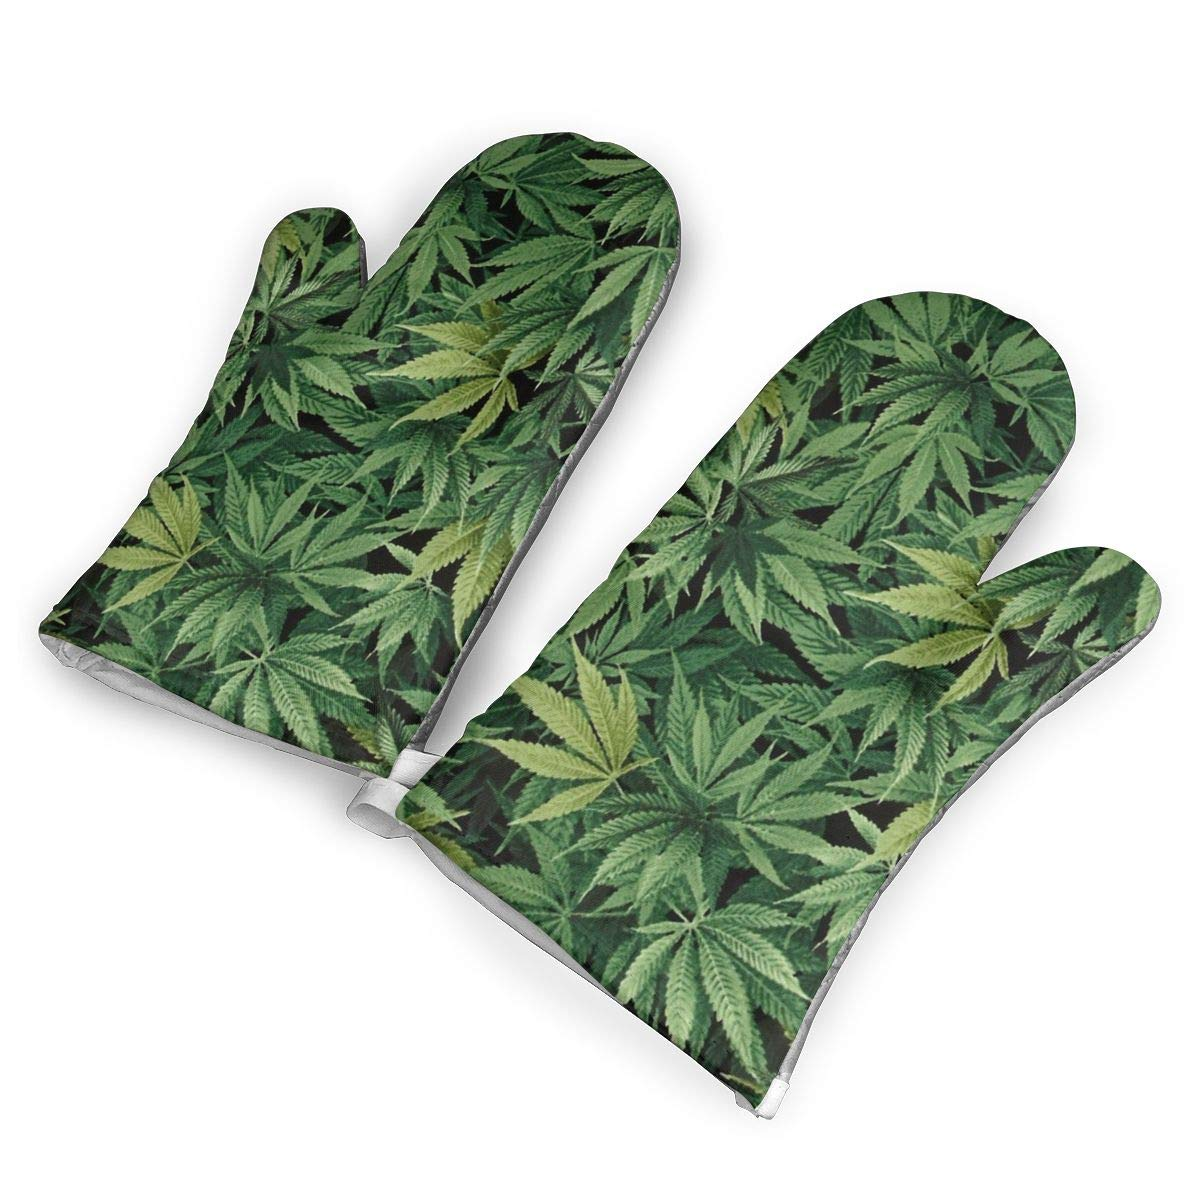 Feederm Cannabis Leaf Oven Mitts,Professional Heat Resistant Microwave Oven Insulation Thickening Gloves Baking Pot Mittens Soft Inner Lining Kitchen Cooking